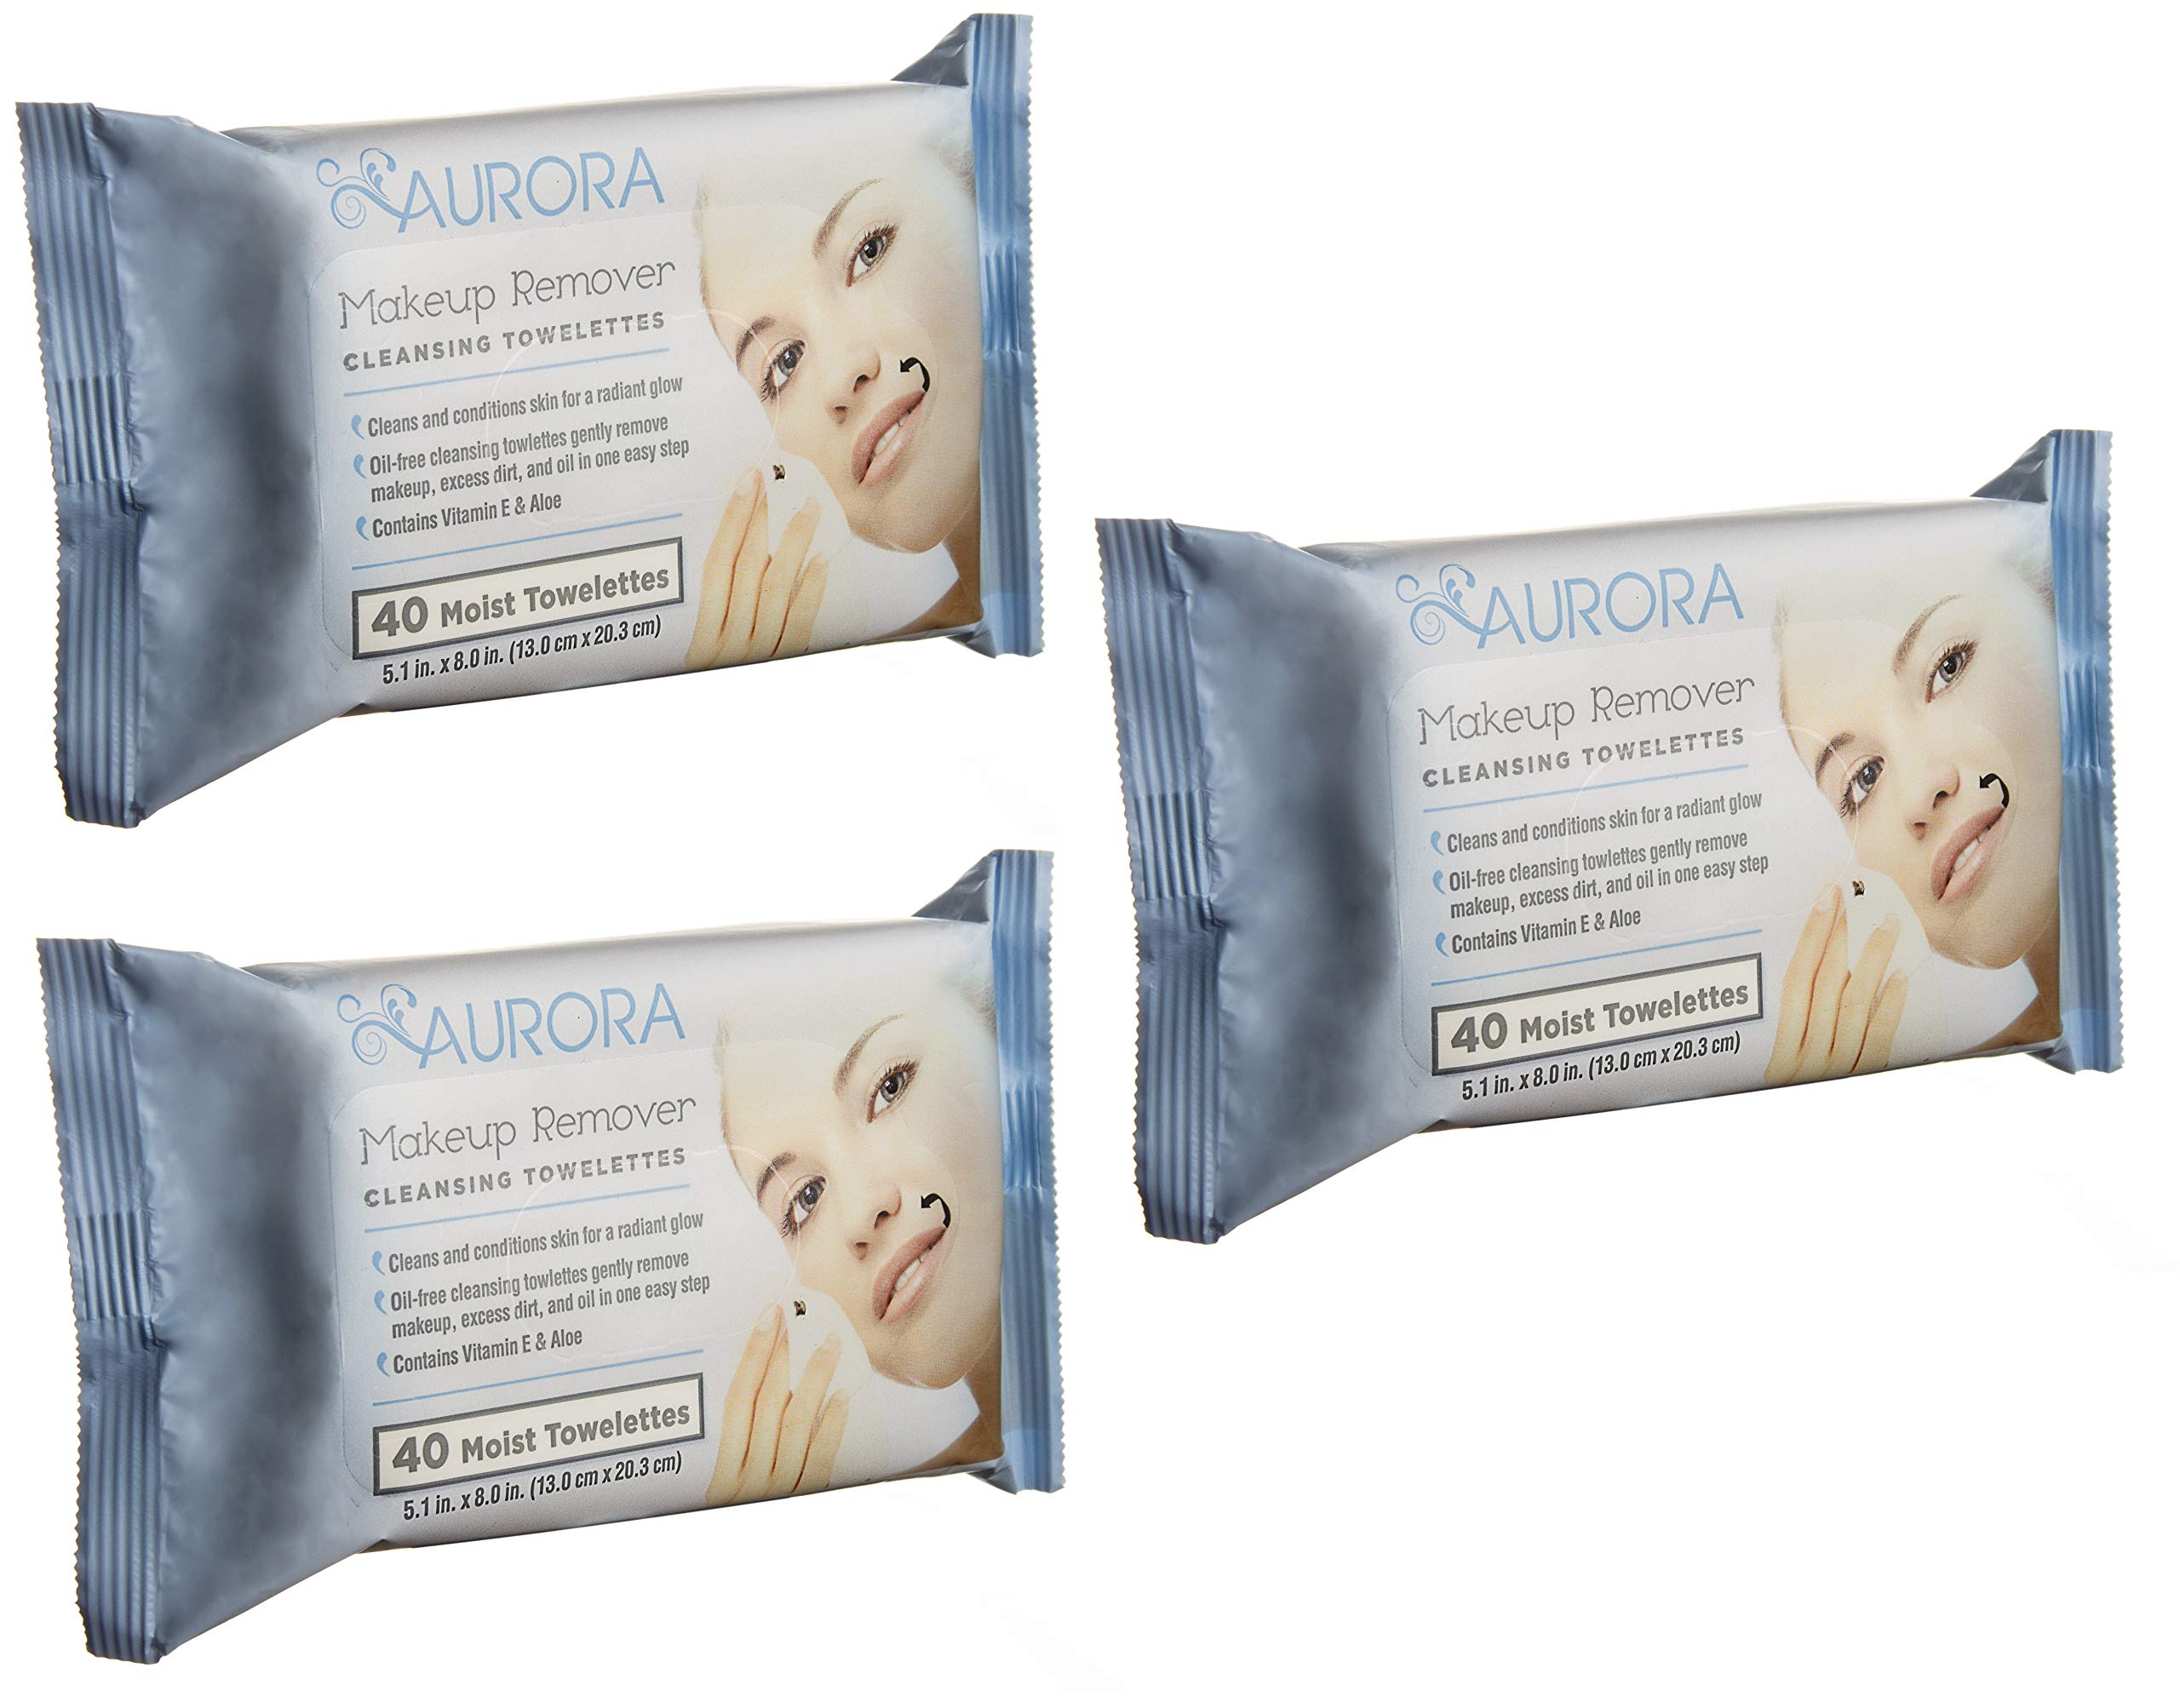 Aurora - Makeup Remover Cleansing Towelettes